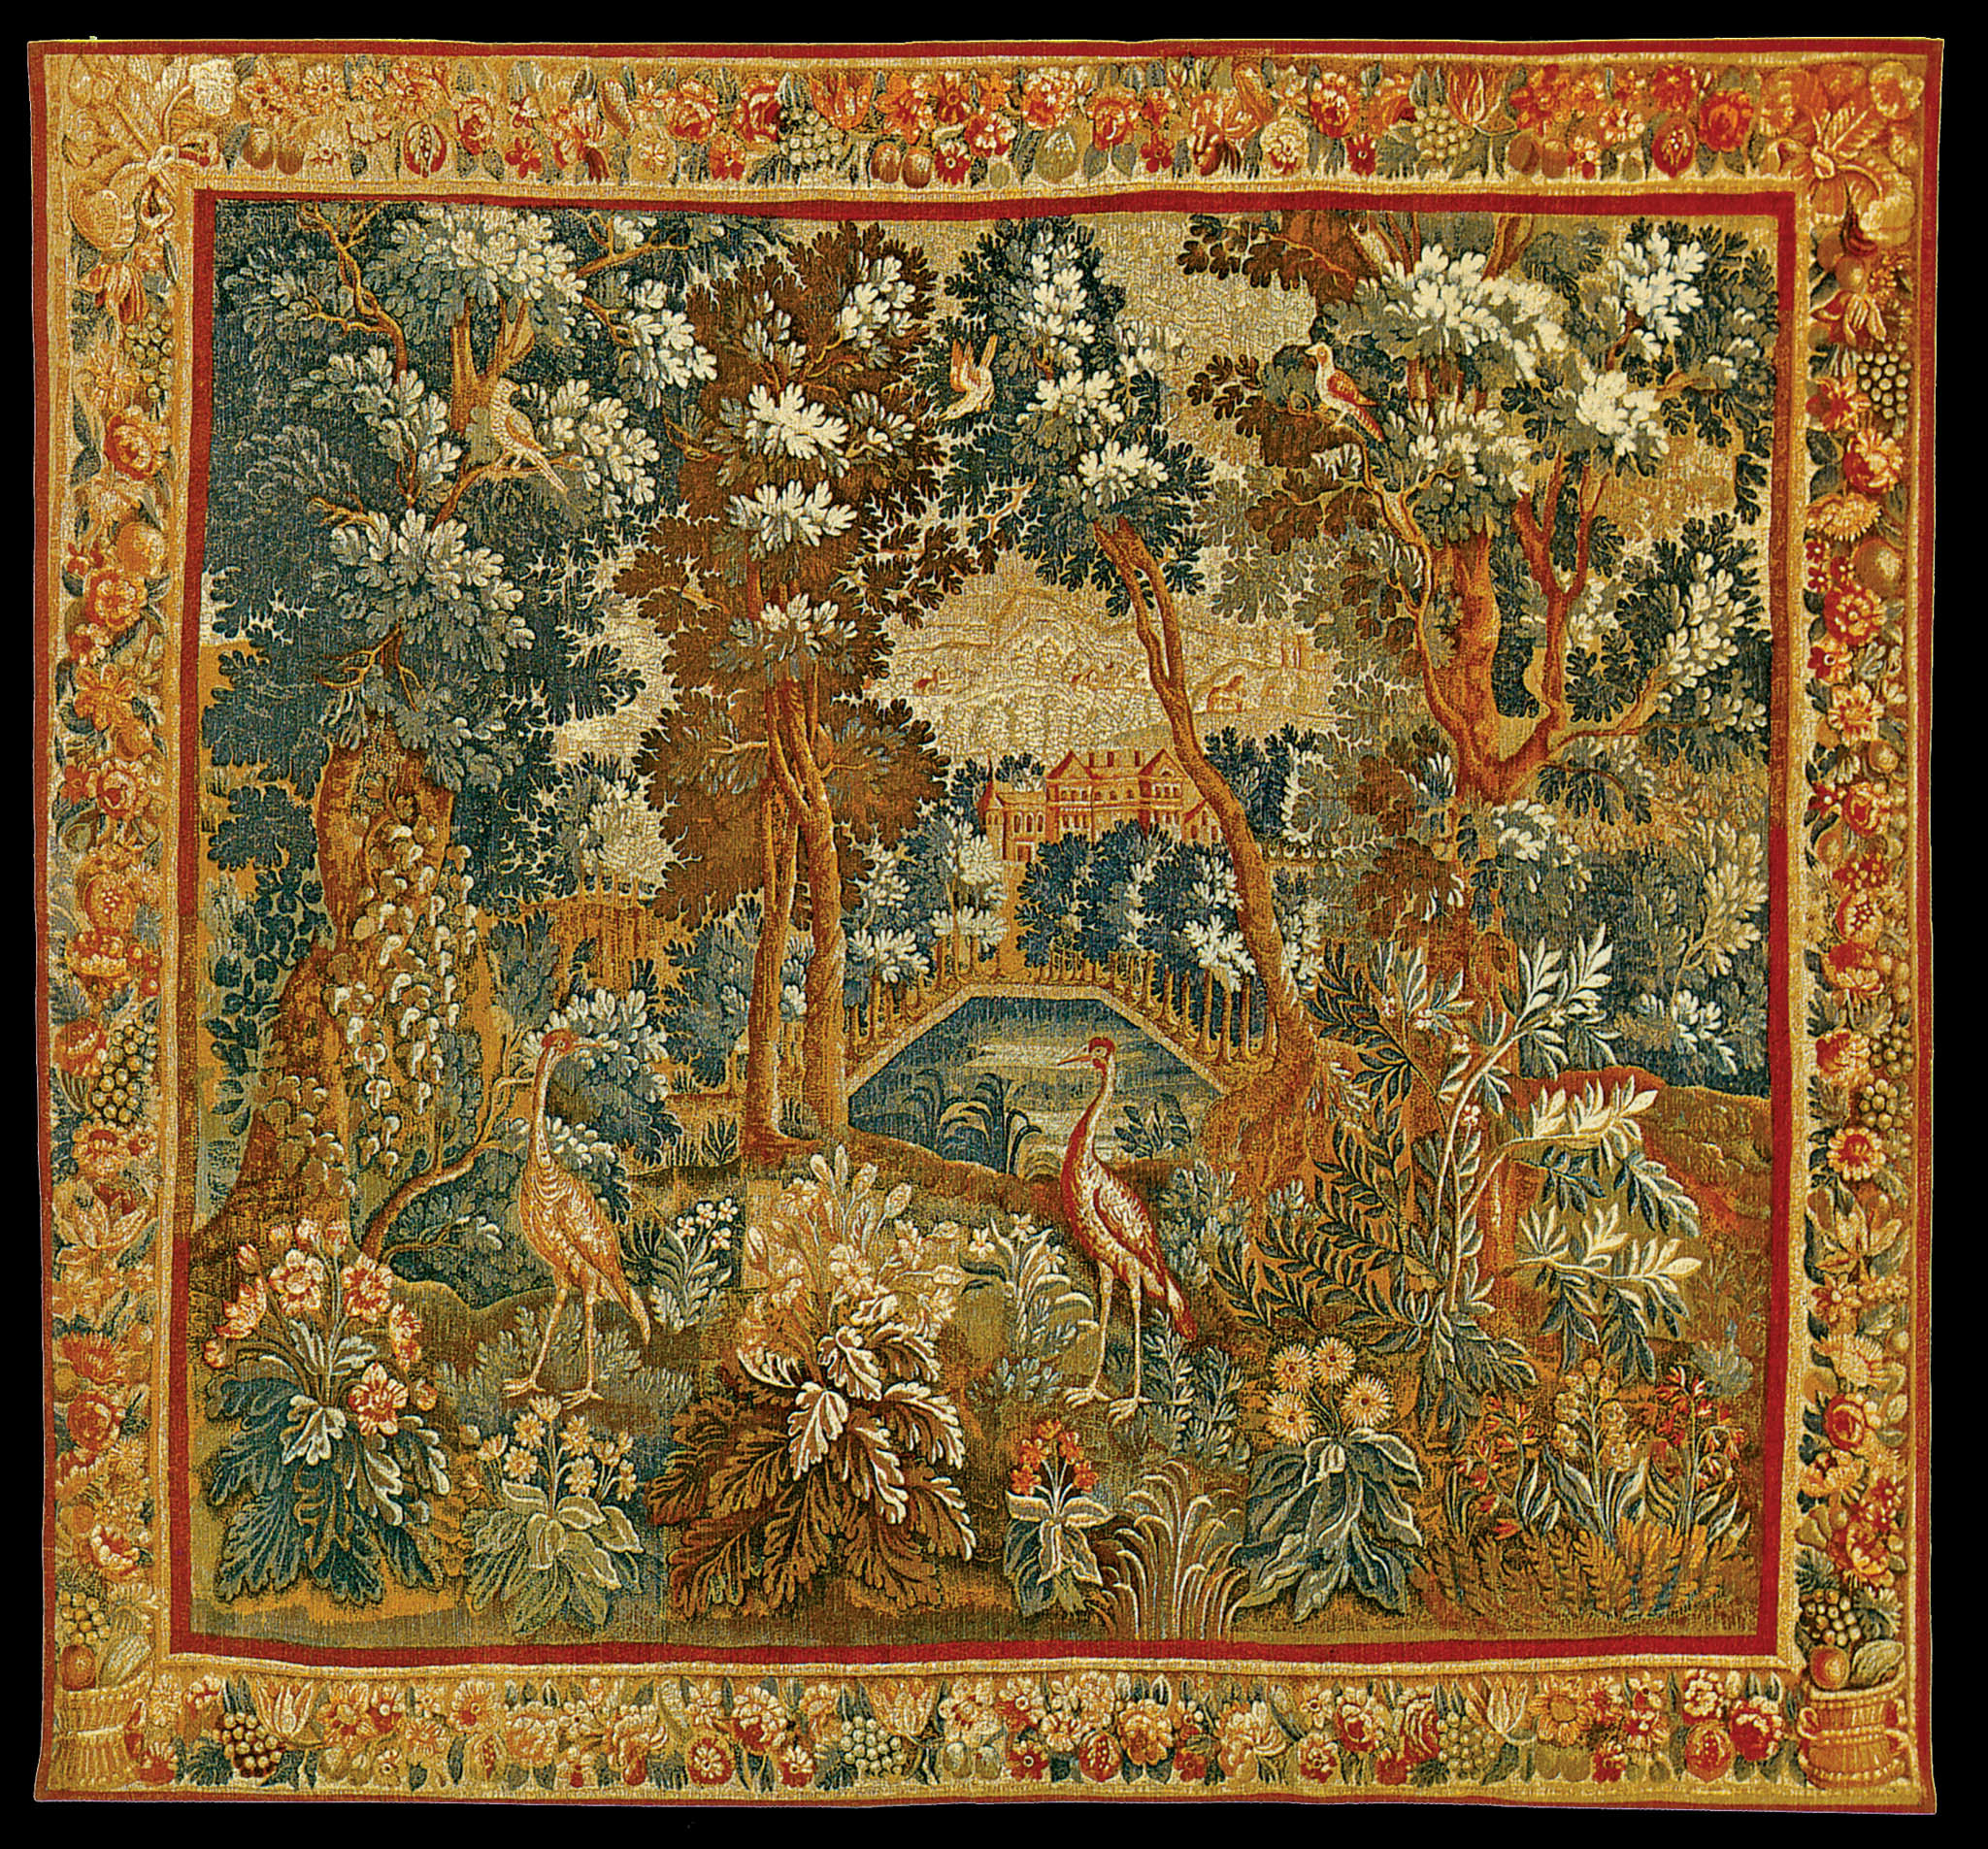 Most Recent Blended Fabric Ethereal Days Chinoiserie Wall Hangings With Rod Intended For The Two Herons Tapestry (View 8 of 20)